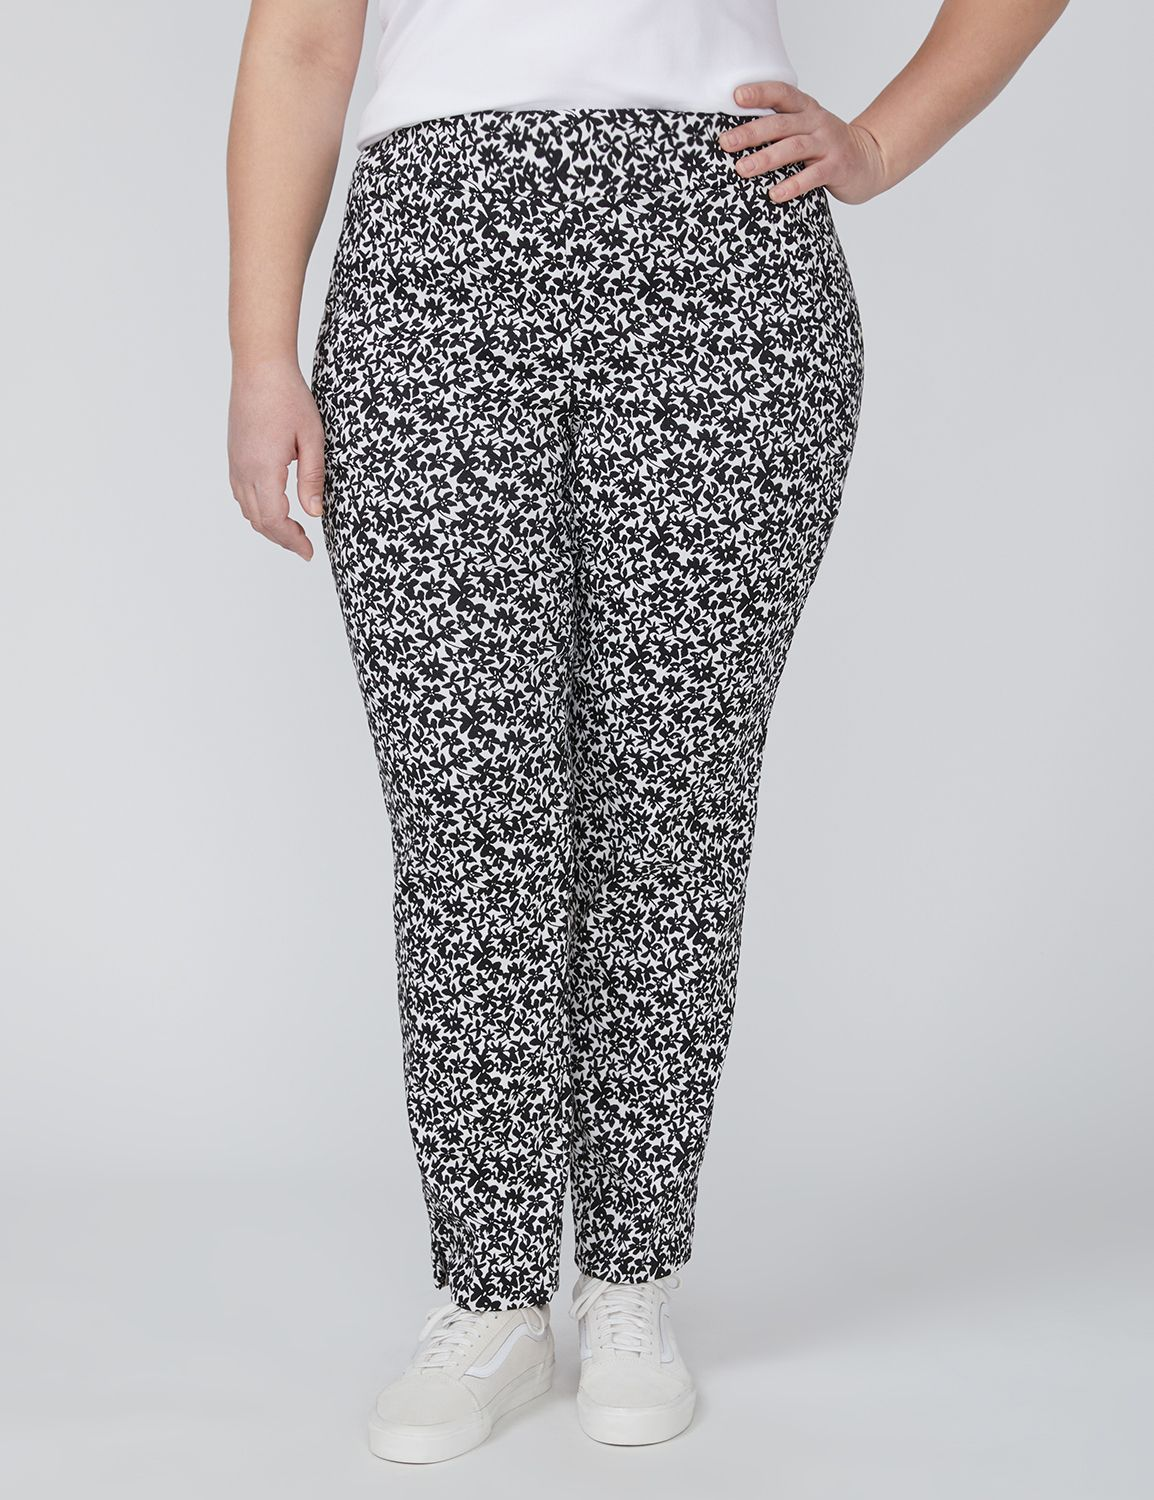 Petite Allie Ankle Pant - Pull-On Floral Jacquard